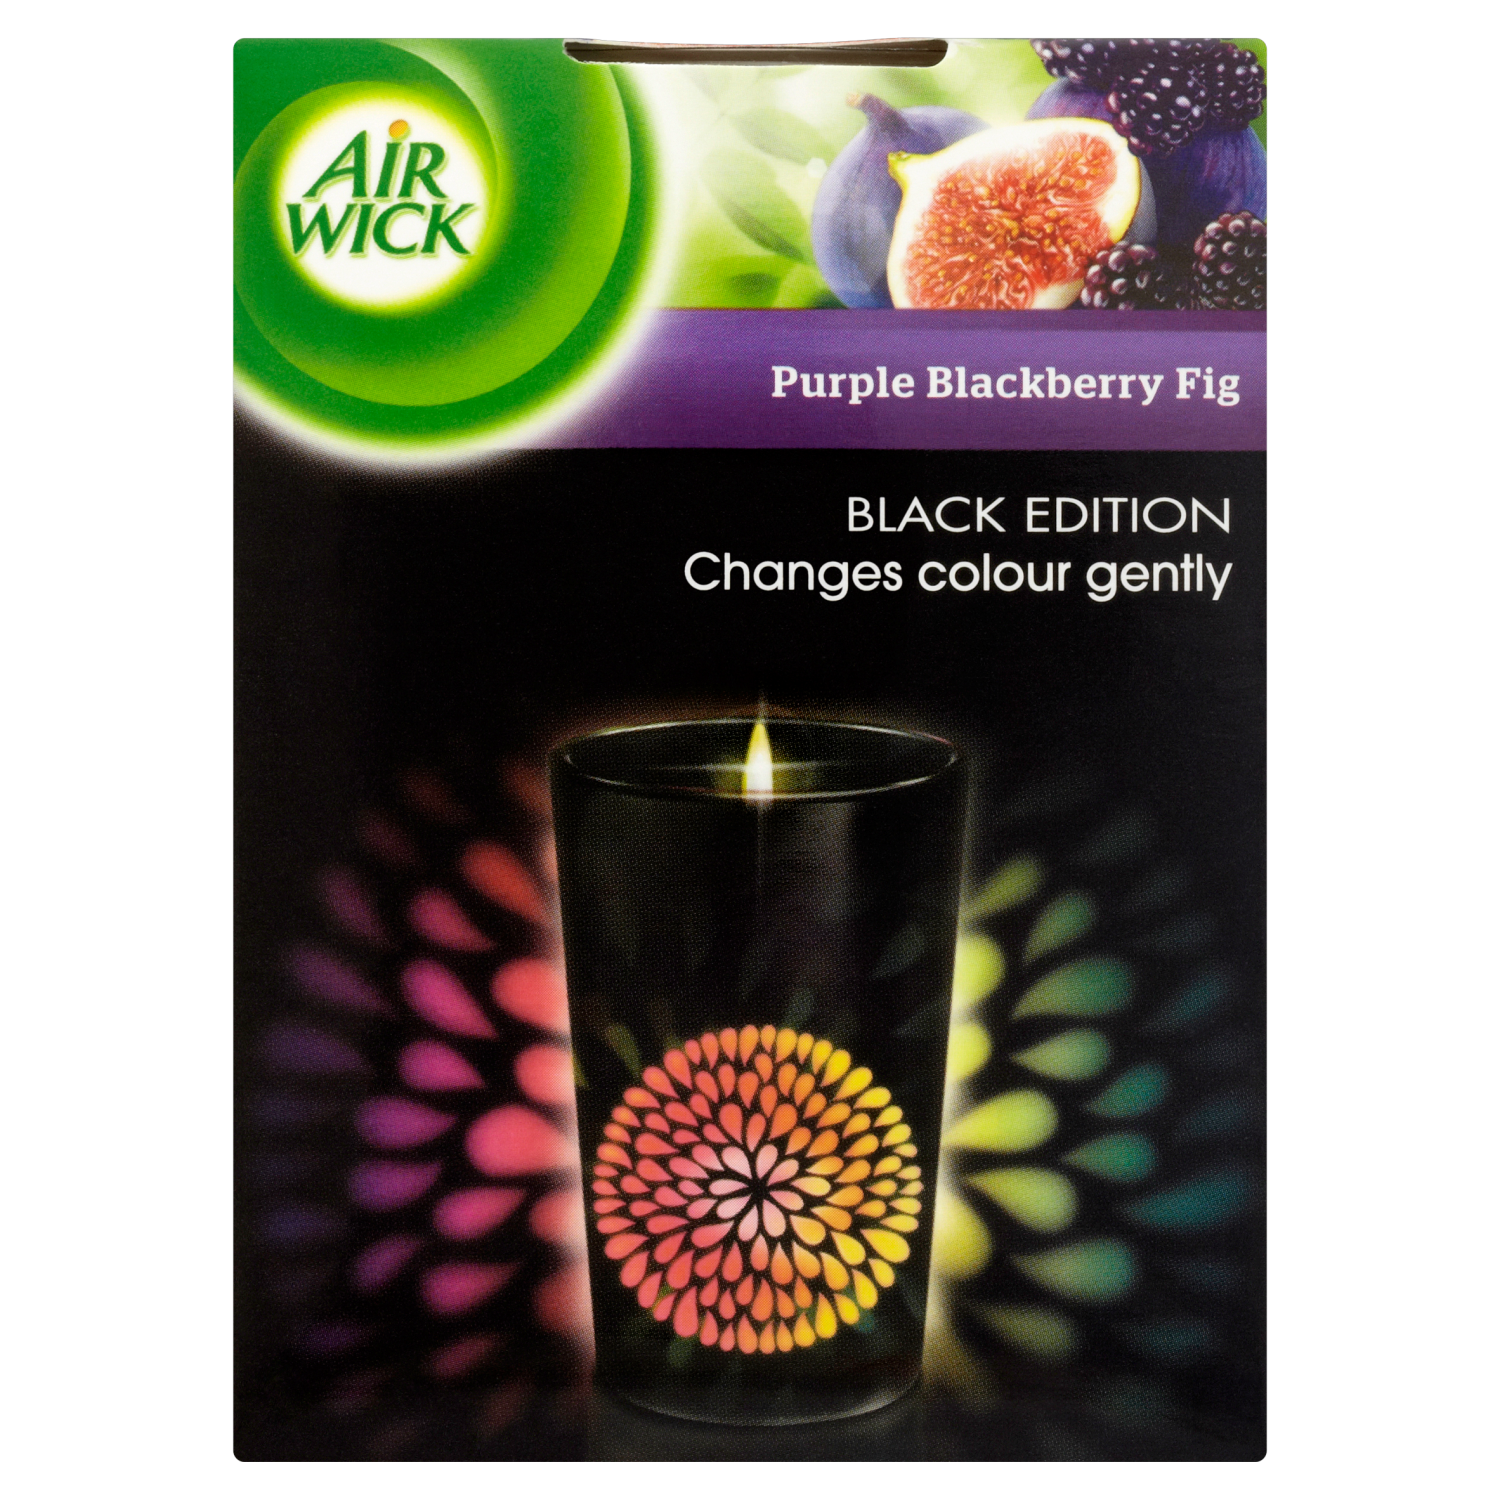 Air Wick Colour Change Candle Purple Blackberry Fig